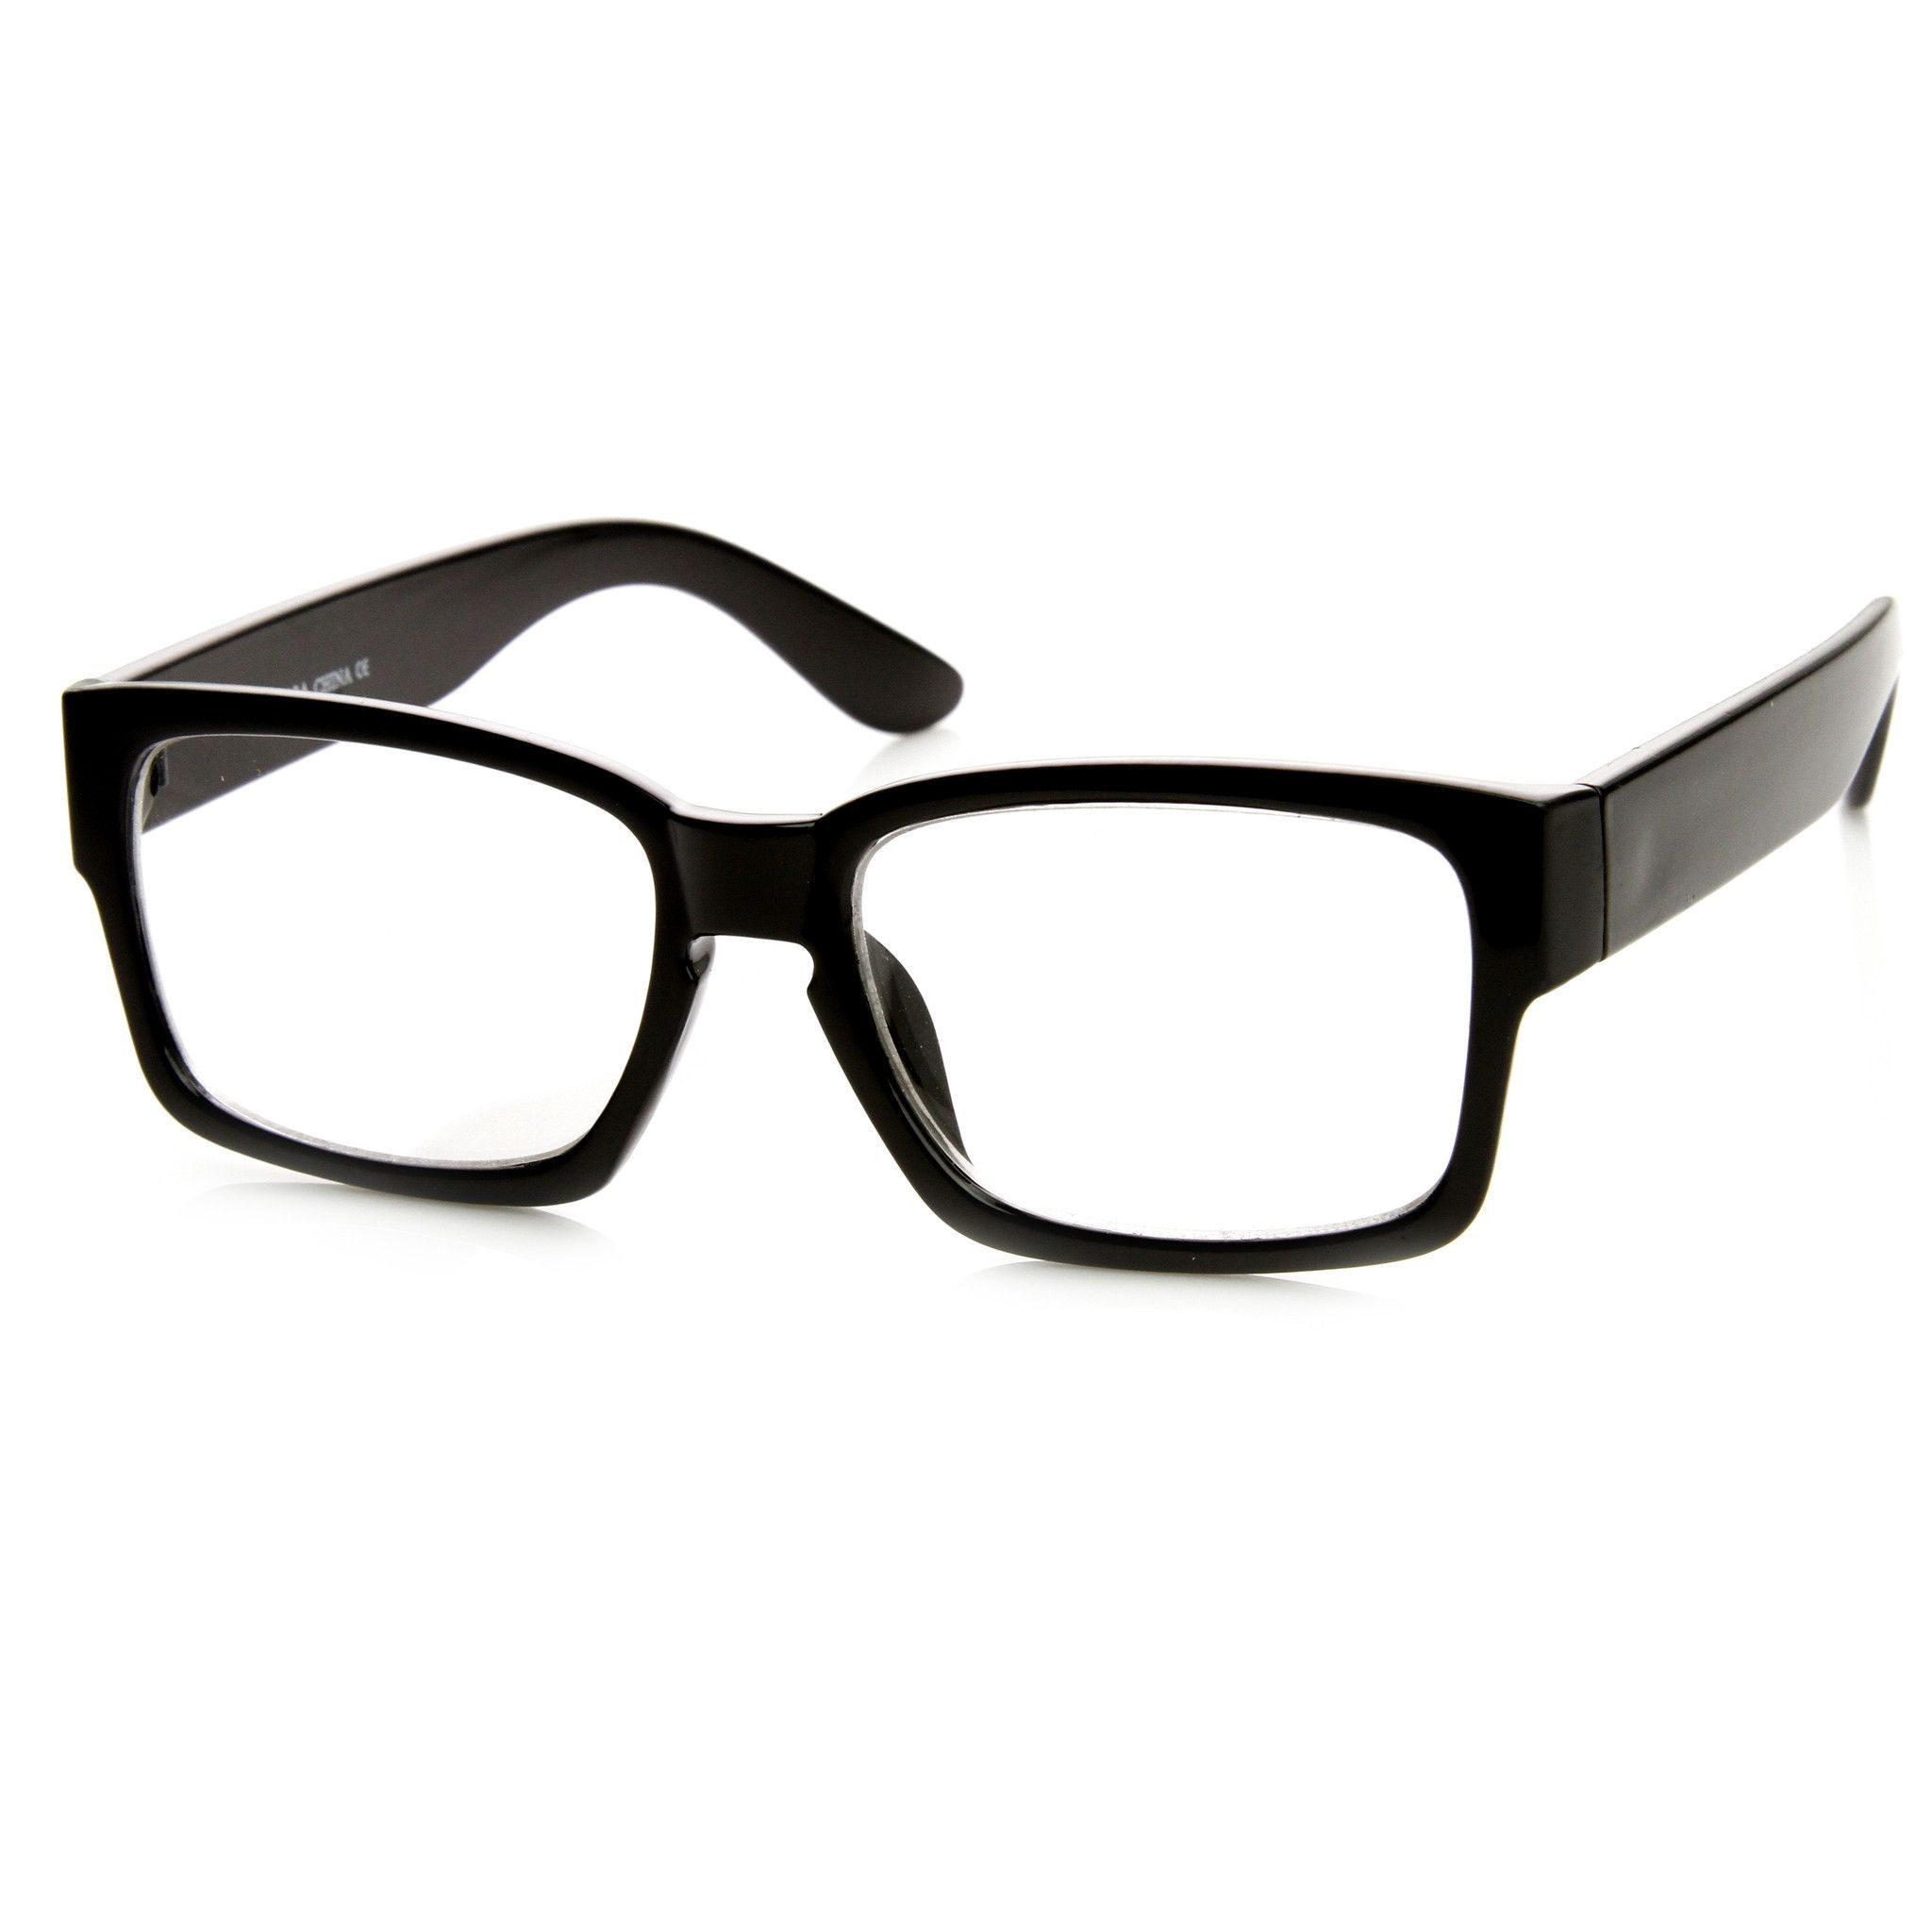 1f1f38e16a European Fashion Bold Modern Clear Lens Frames Glasses 8854 ...